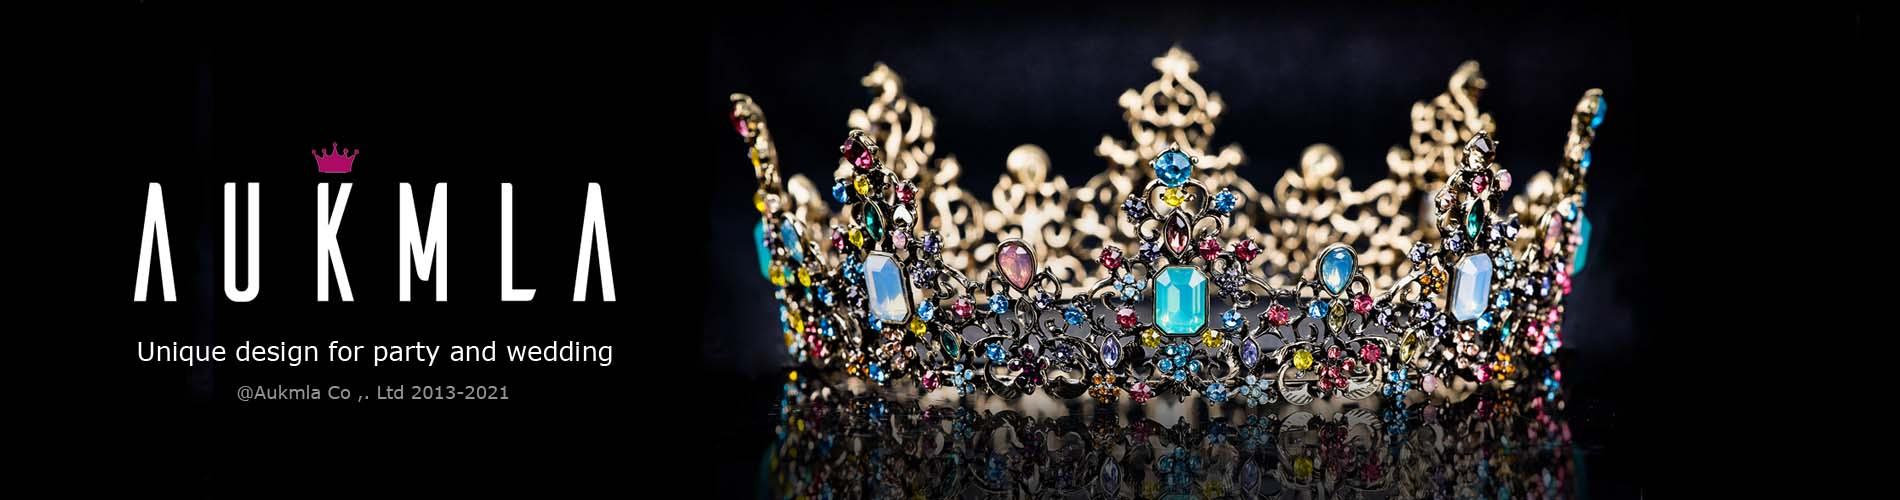 Crown for wedding and party